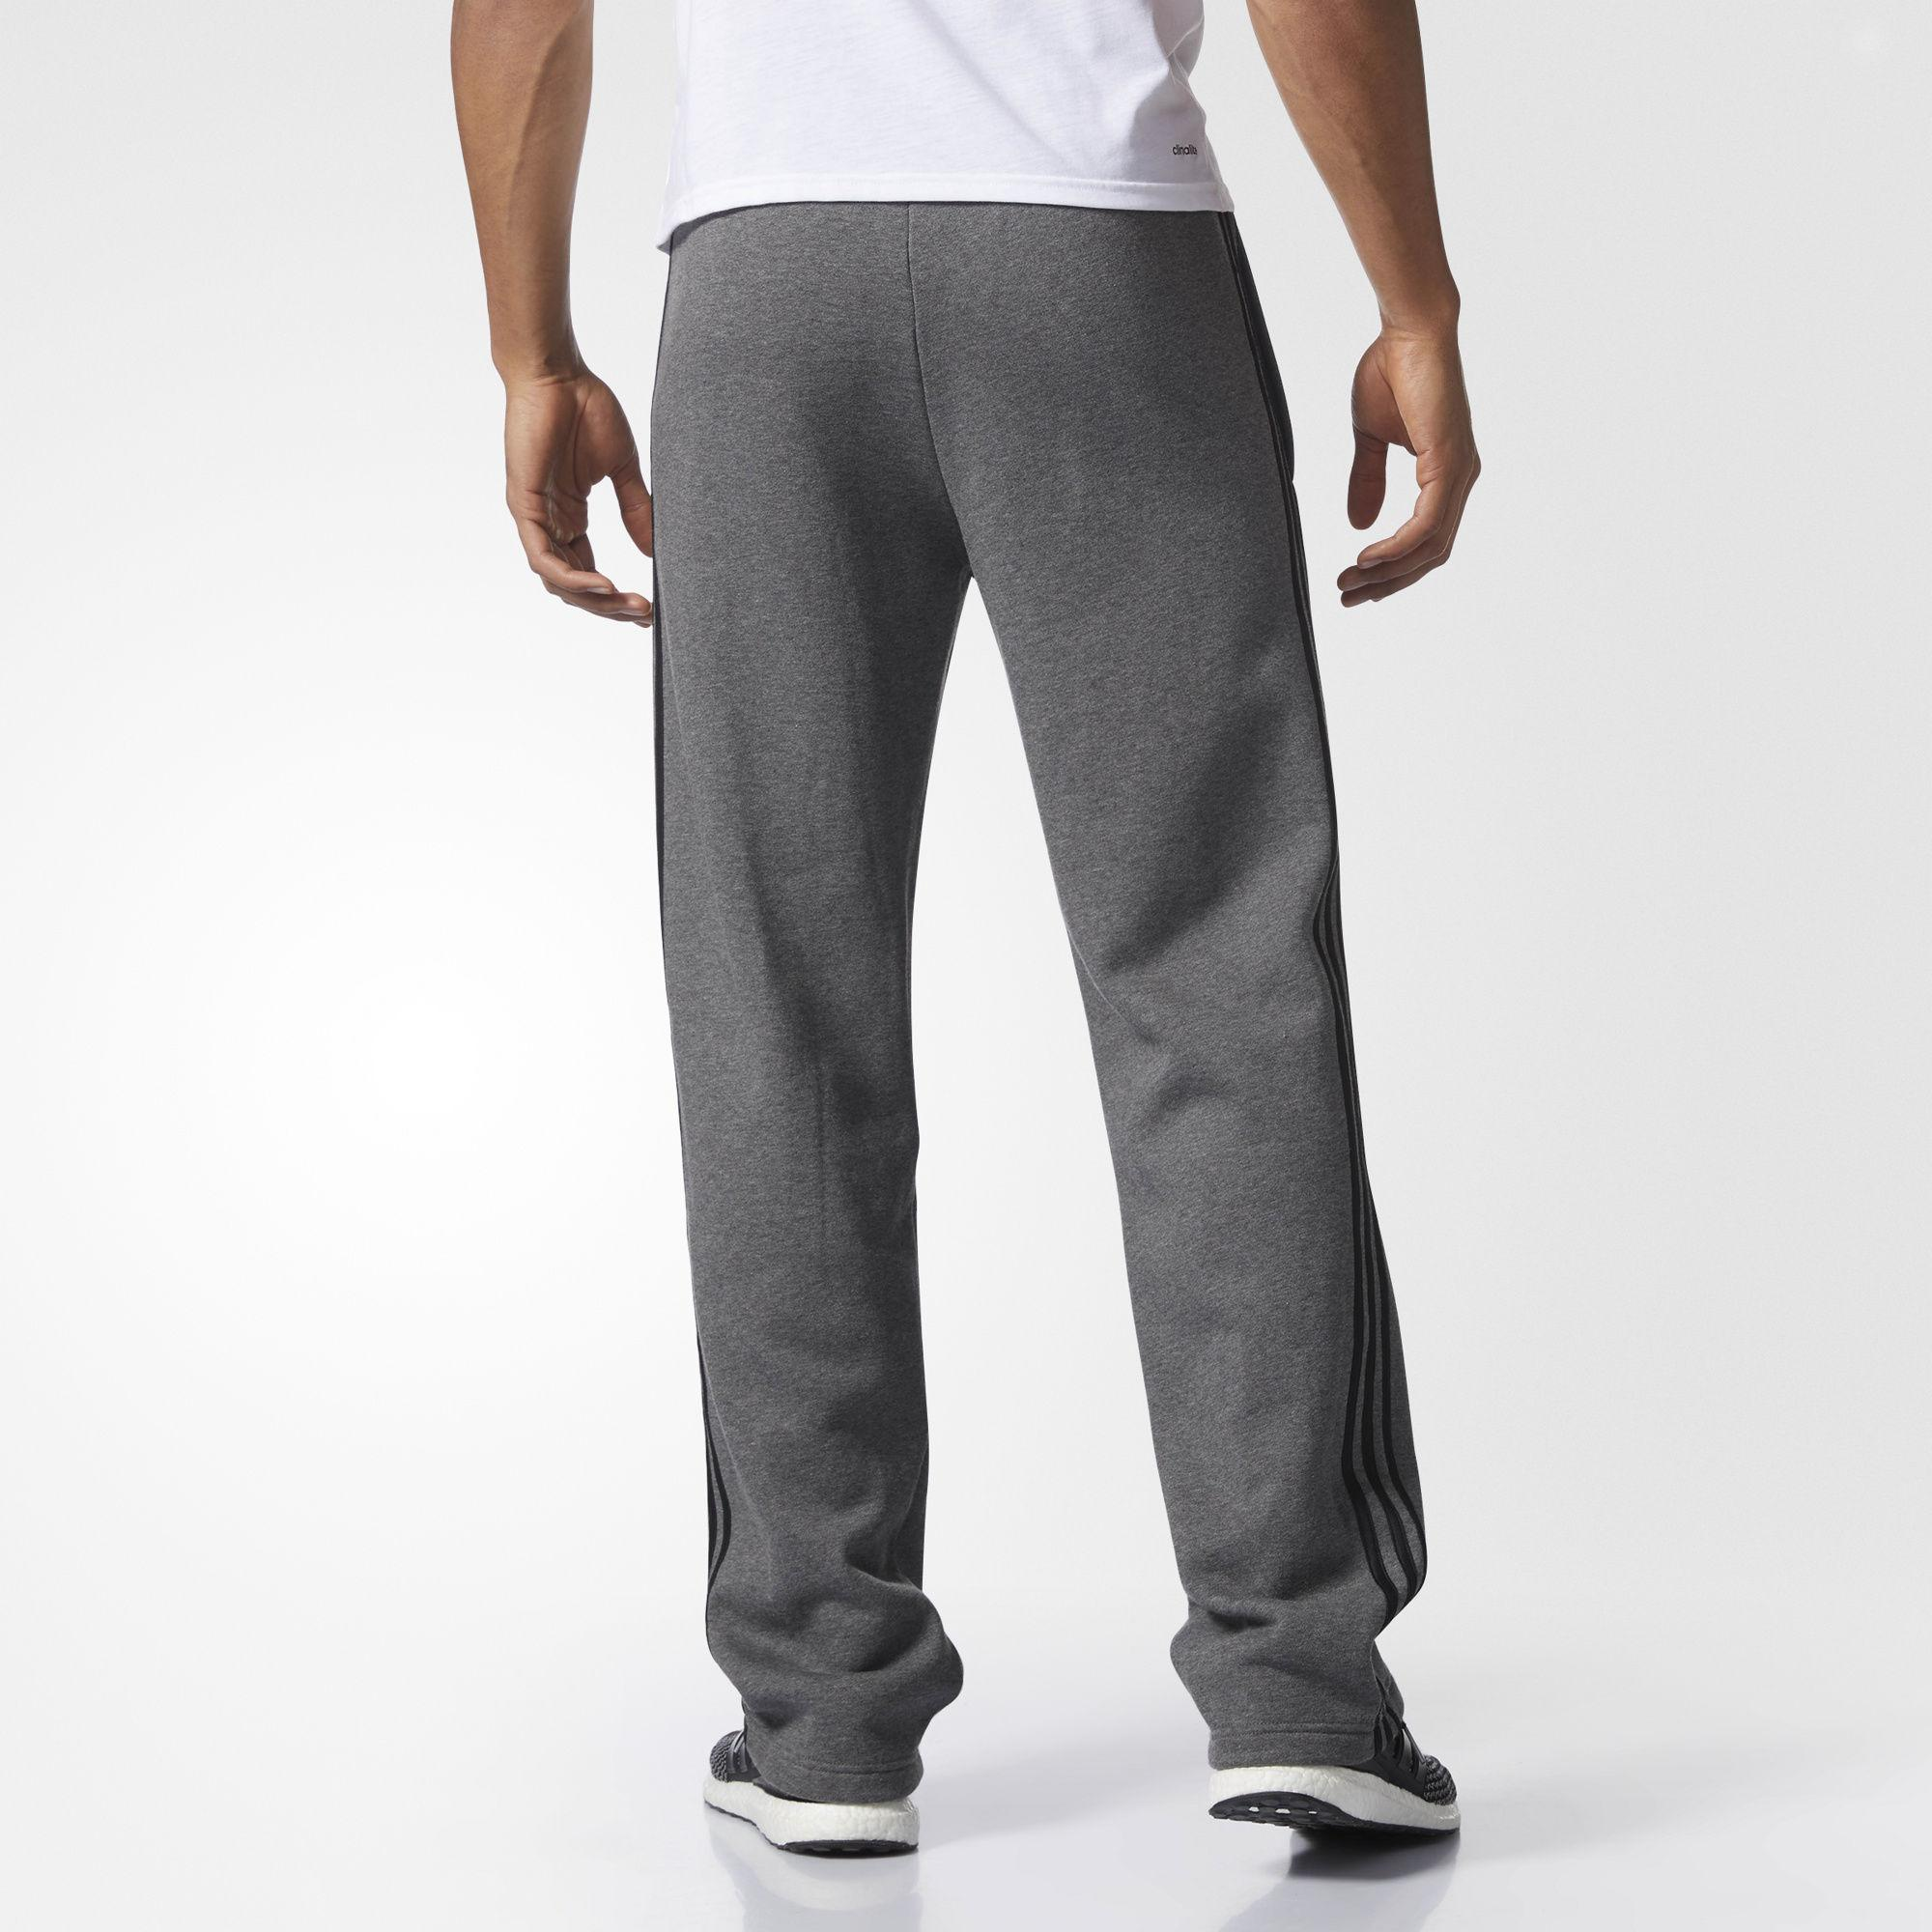 adidas pants in tall